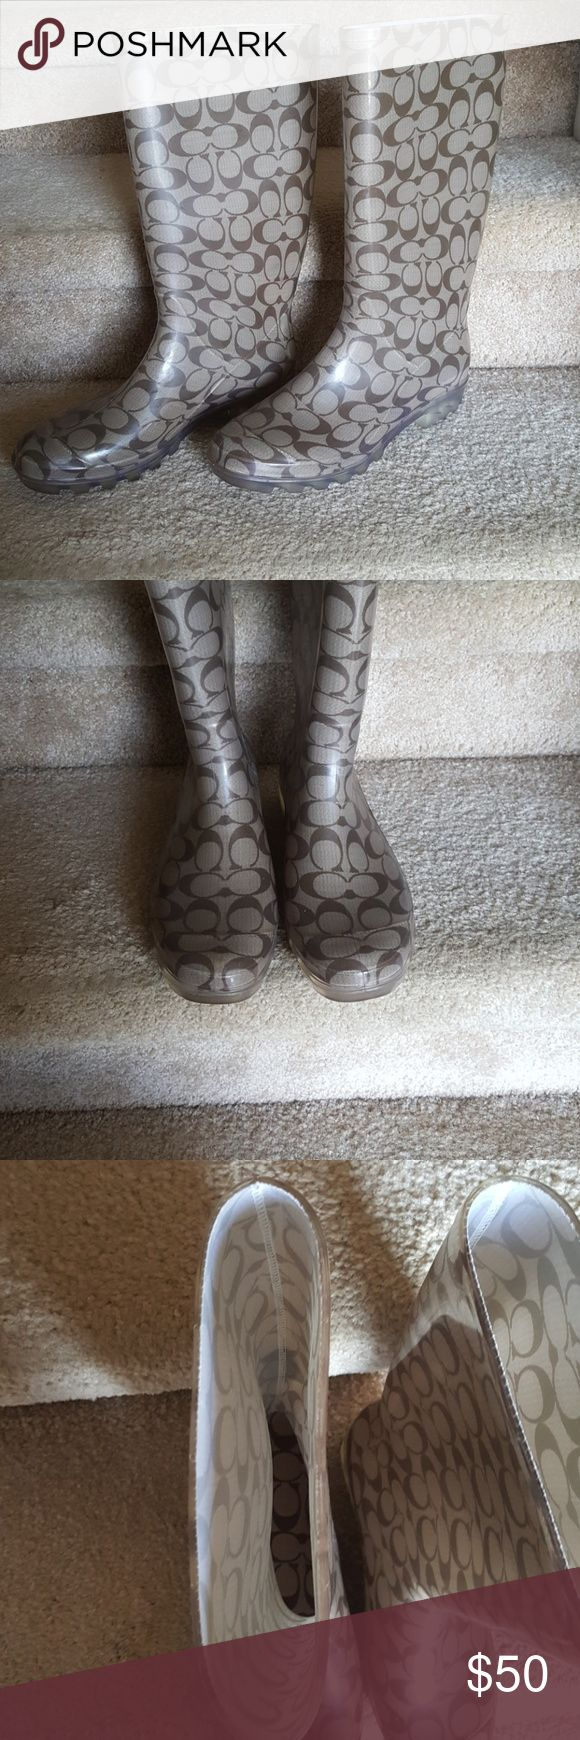 Authentic Coach Rain Boots EUC Worn a handful of times. True to size. No flaws. Super cute. Selling to clear my closet. Price is set to sell! PRICE IS FIRM! Coach Shoes Winter & Rain Boots